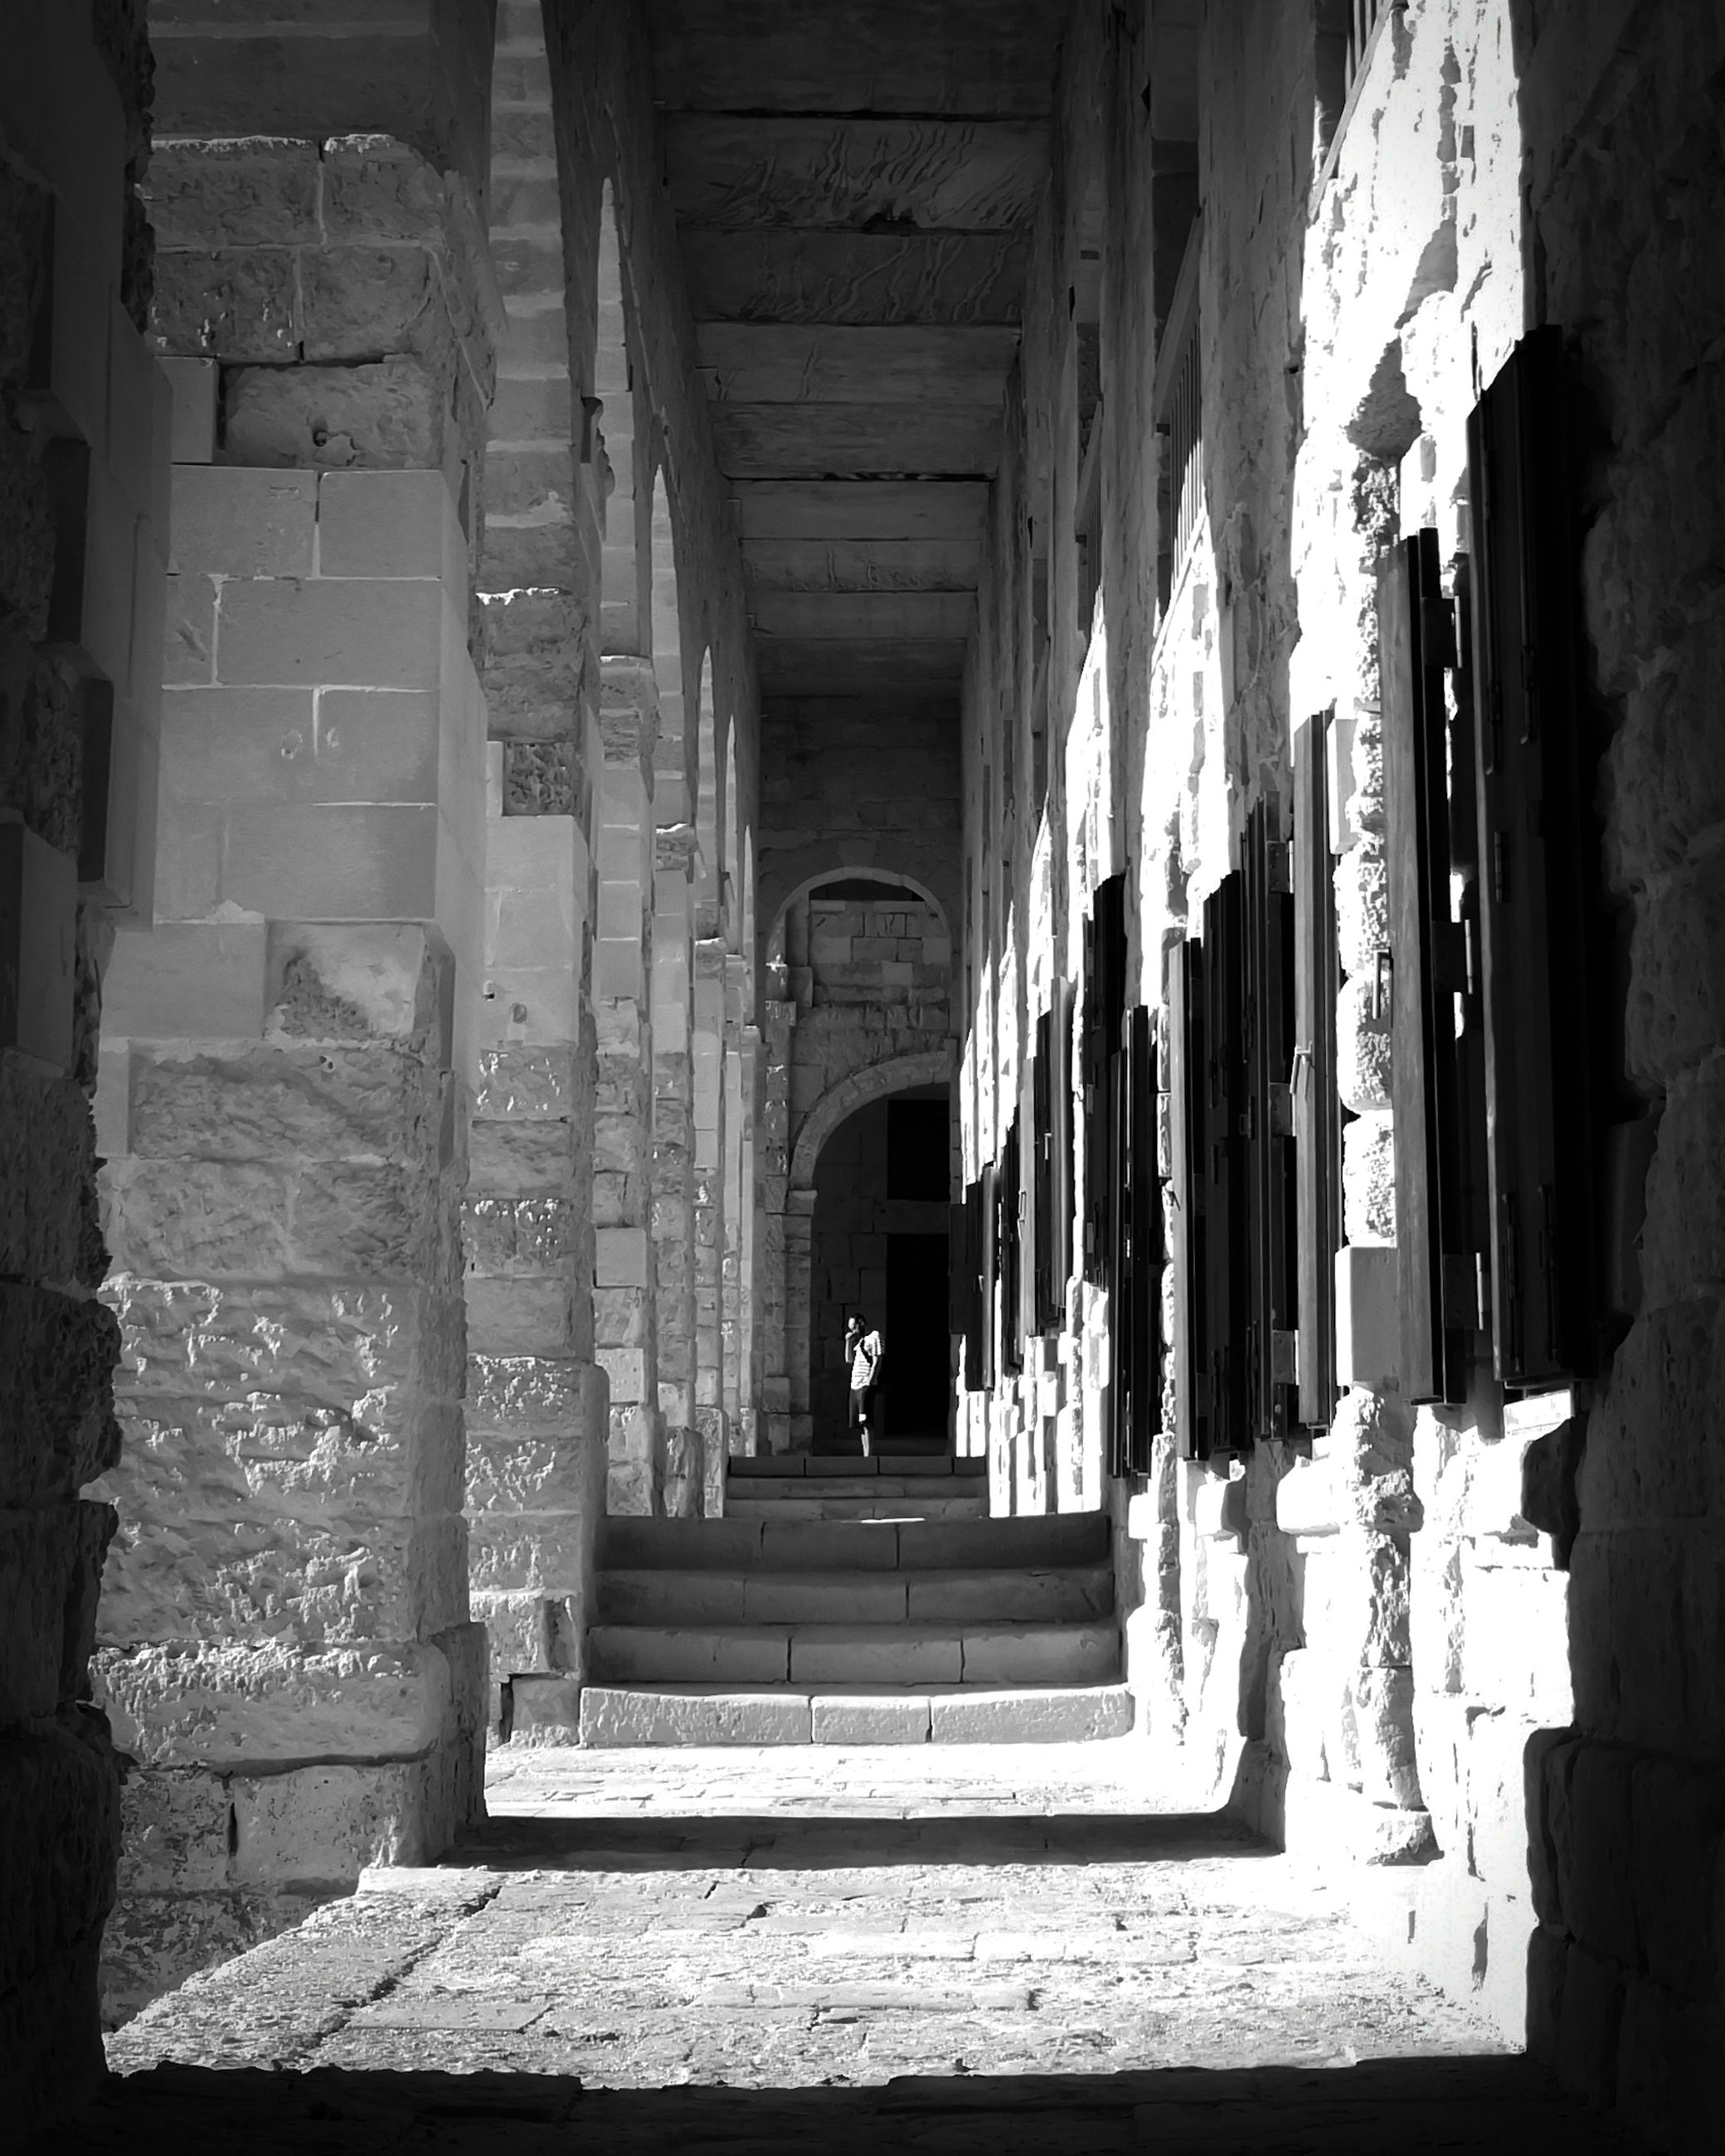 architecture, built structure, building, the way forward, direction, old, the past, arch, day, history, indoors, arcade, no people, architectural column, abandoned, corridor, staircase, damaged, sunlight, diminishing perspective, deterioration, ruined